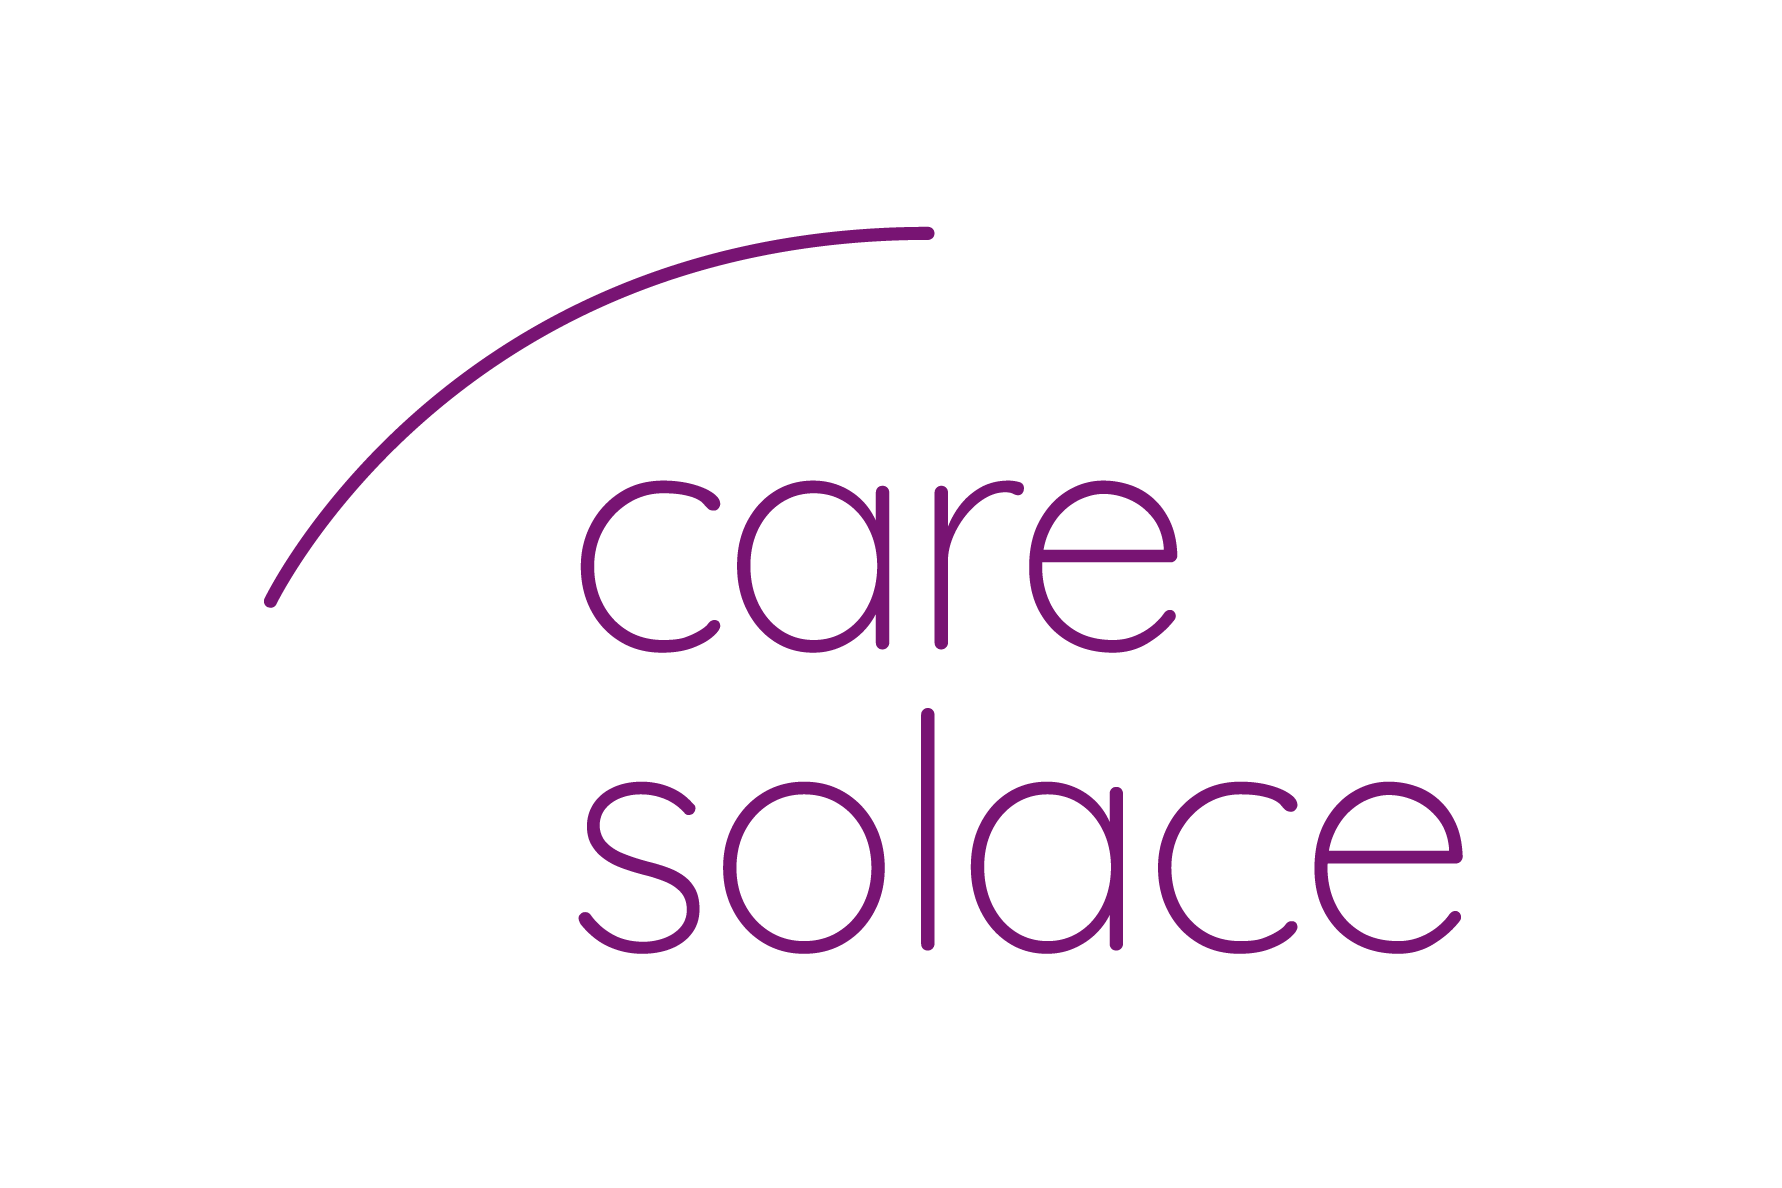 Irvine Unified School District Adds Care Solace to its Comprehensive Mental Health & Wellness Services